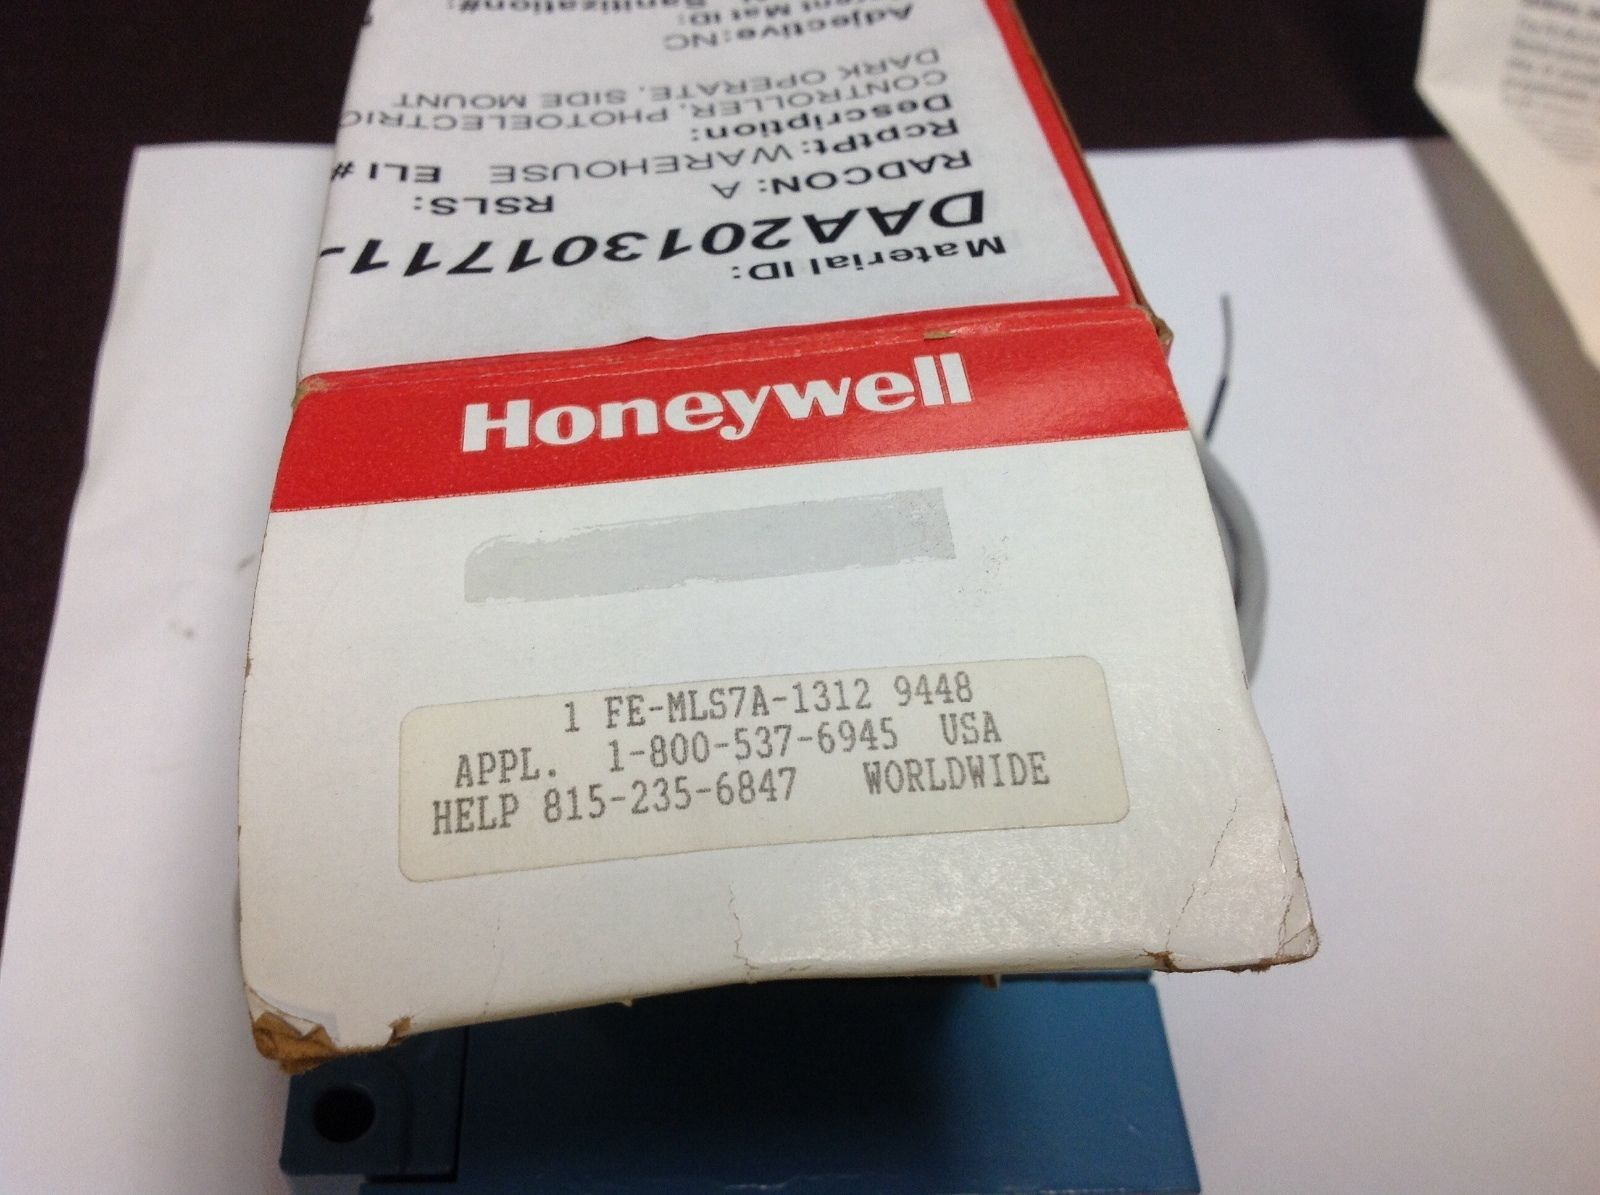 HONEYWELL MICRO SWITCH FE-MLS7A-1312 NIB PHOTOELECTRIC 12VDC SPECS $99